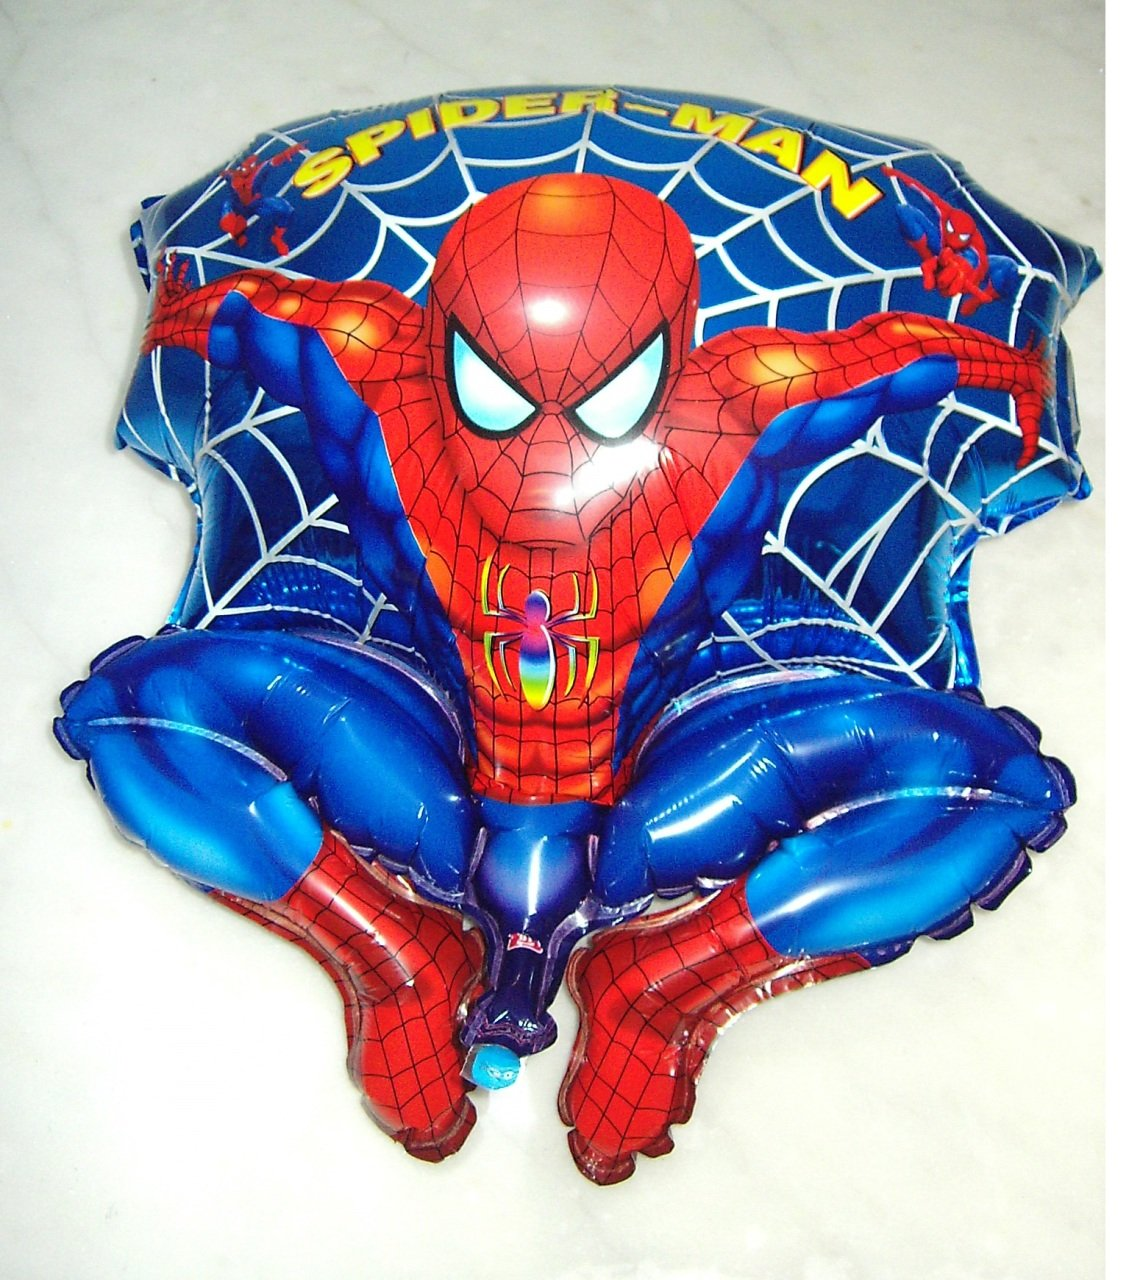 Balon Folyo Orumcek Adam Spiderman